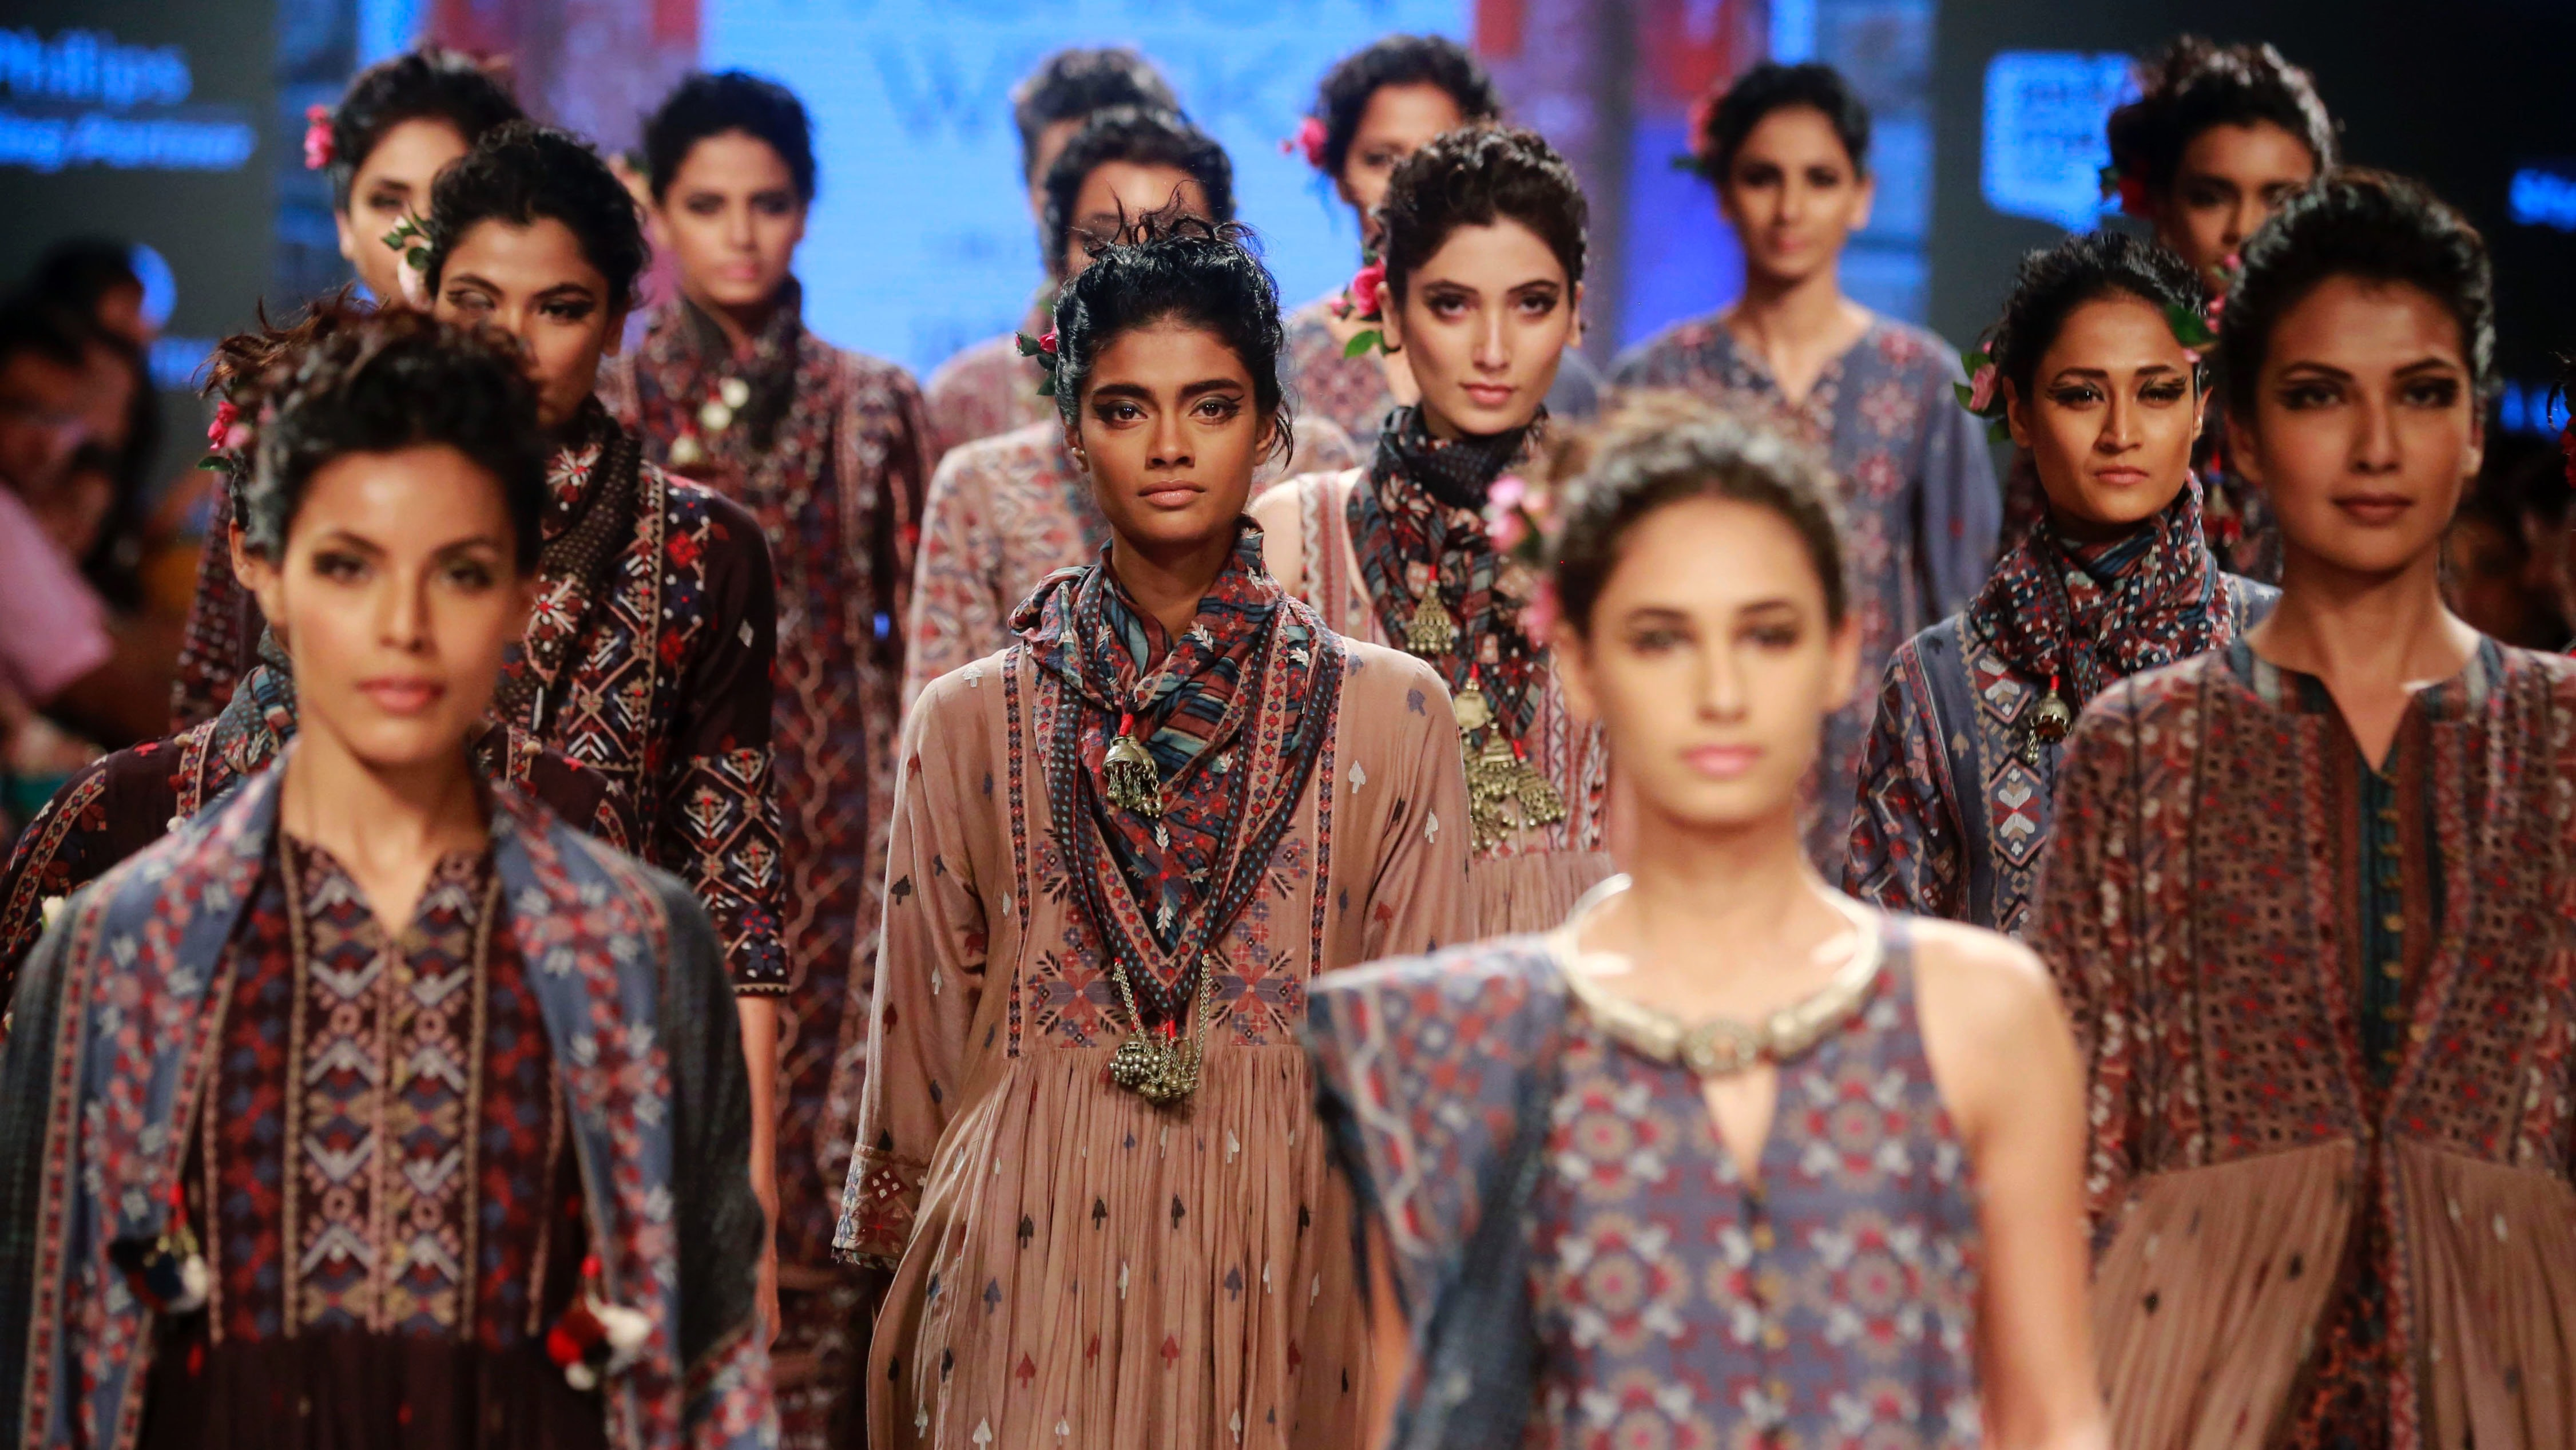 Indian models display creations by designer Rahul and Shikha during the Lakme Fashion Week in Mumbai, India, Thursday, Aug. 27, 2015. (AP Photo/Rafiq Maqbool)